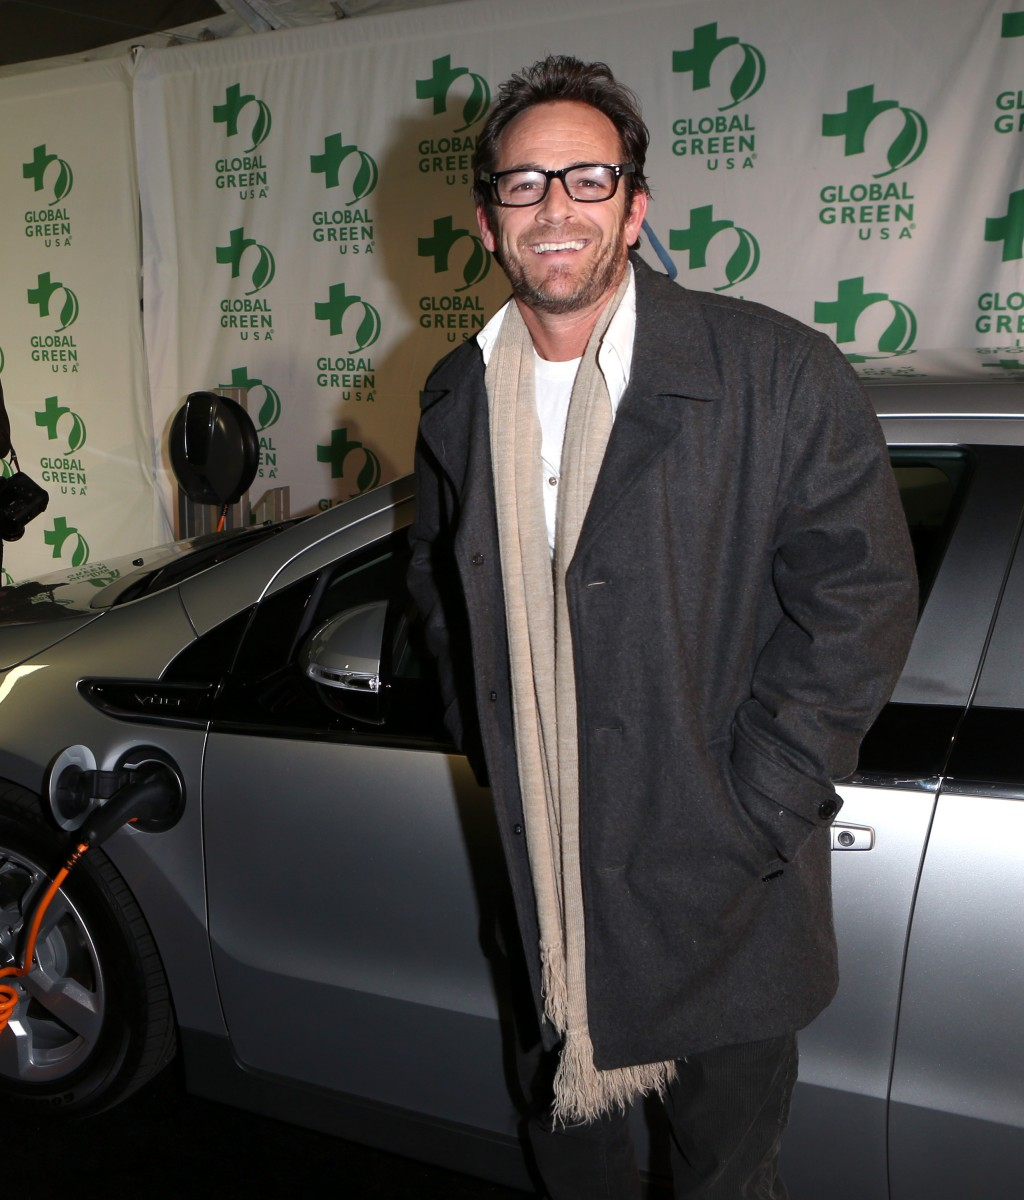 Luke Perry poses with a Chevy Volt at the pre-Oscar event